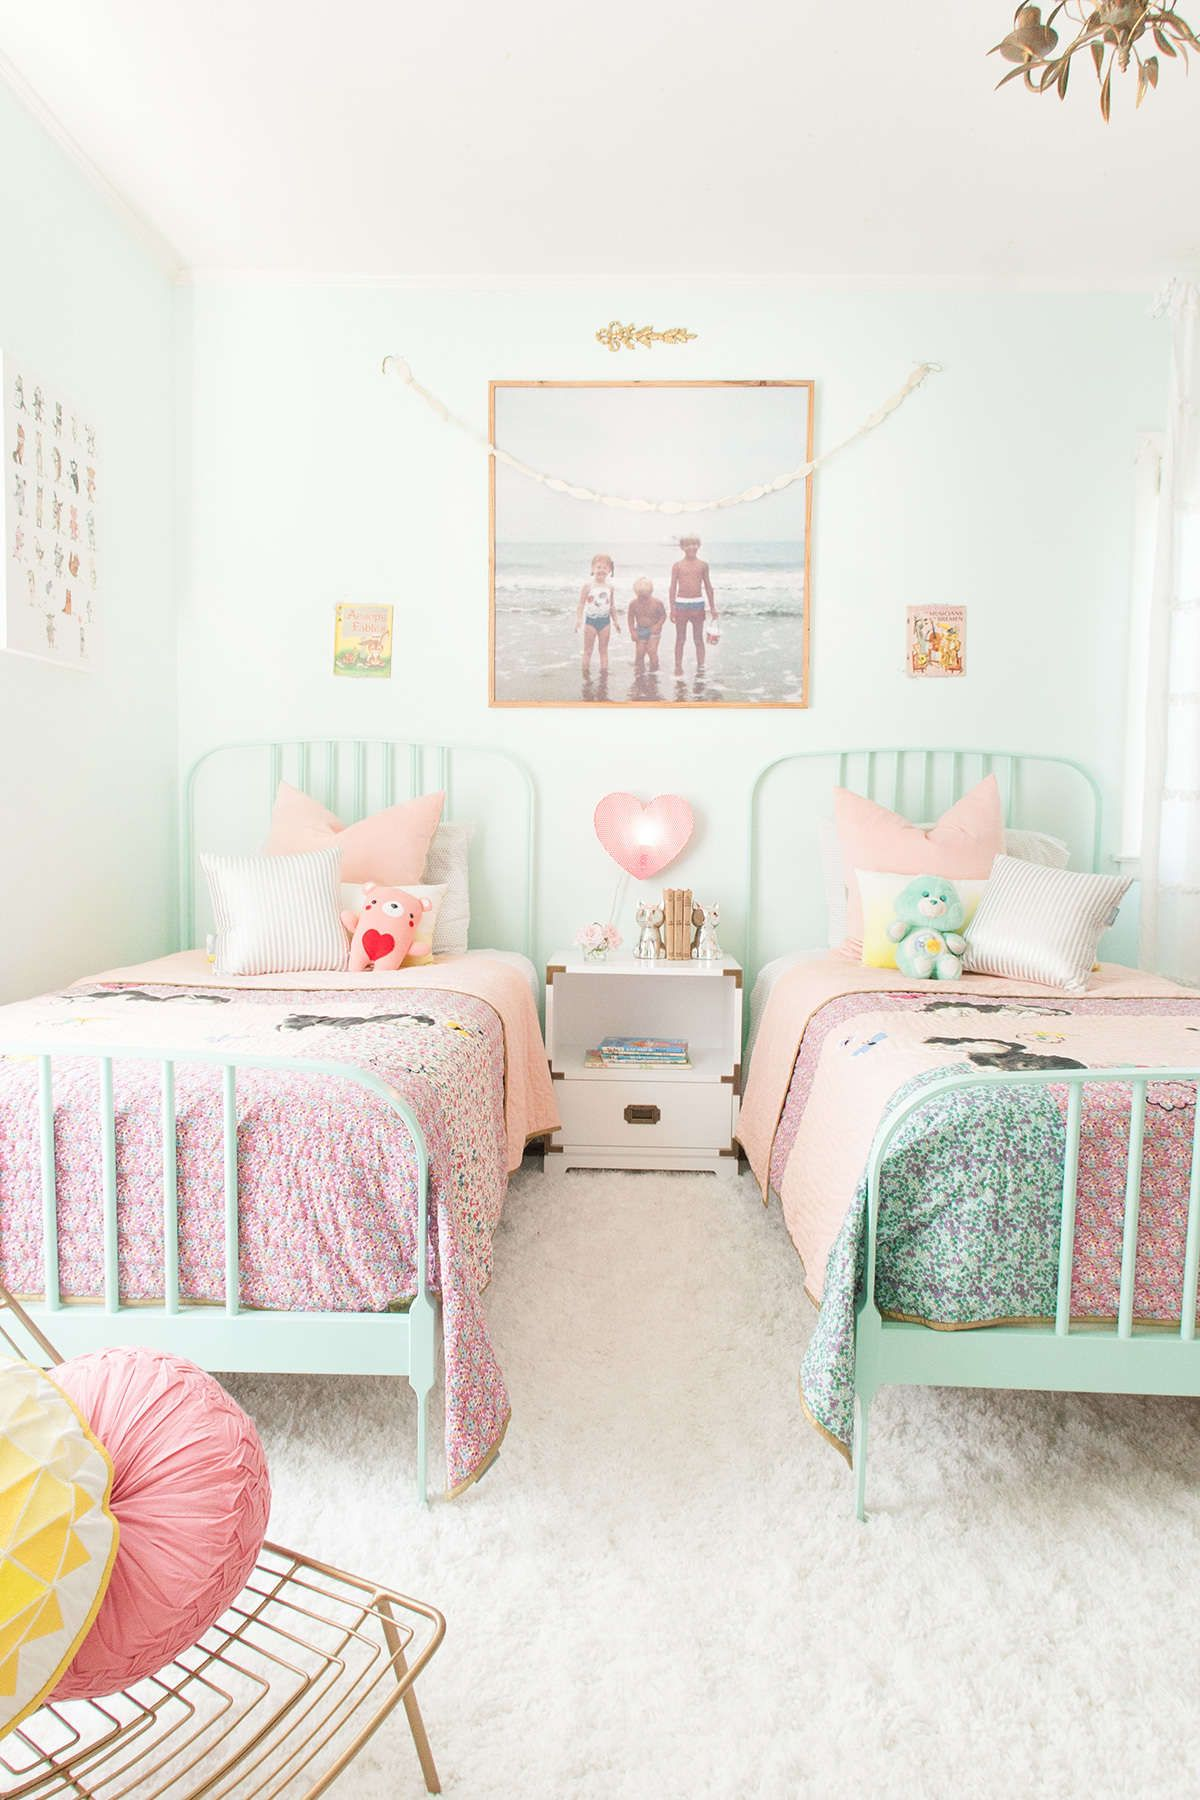 shared room inspiration with the land of nod | Kinderzimmer, Pastell ...